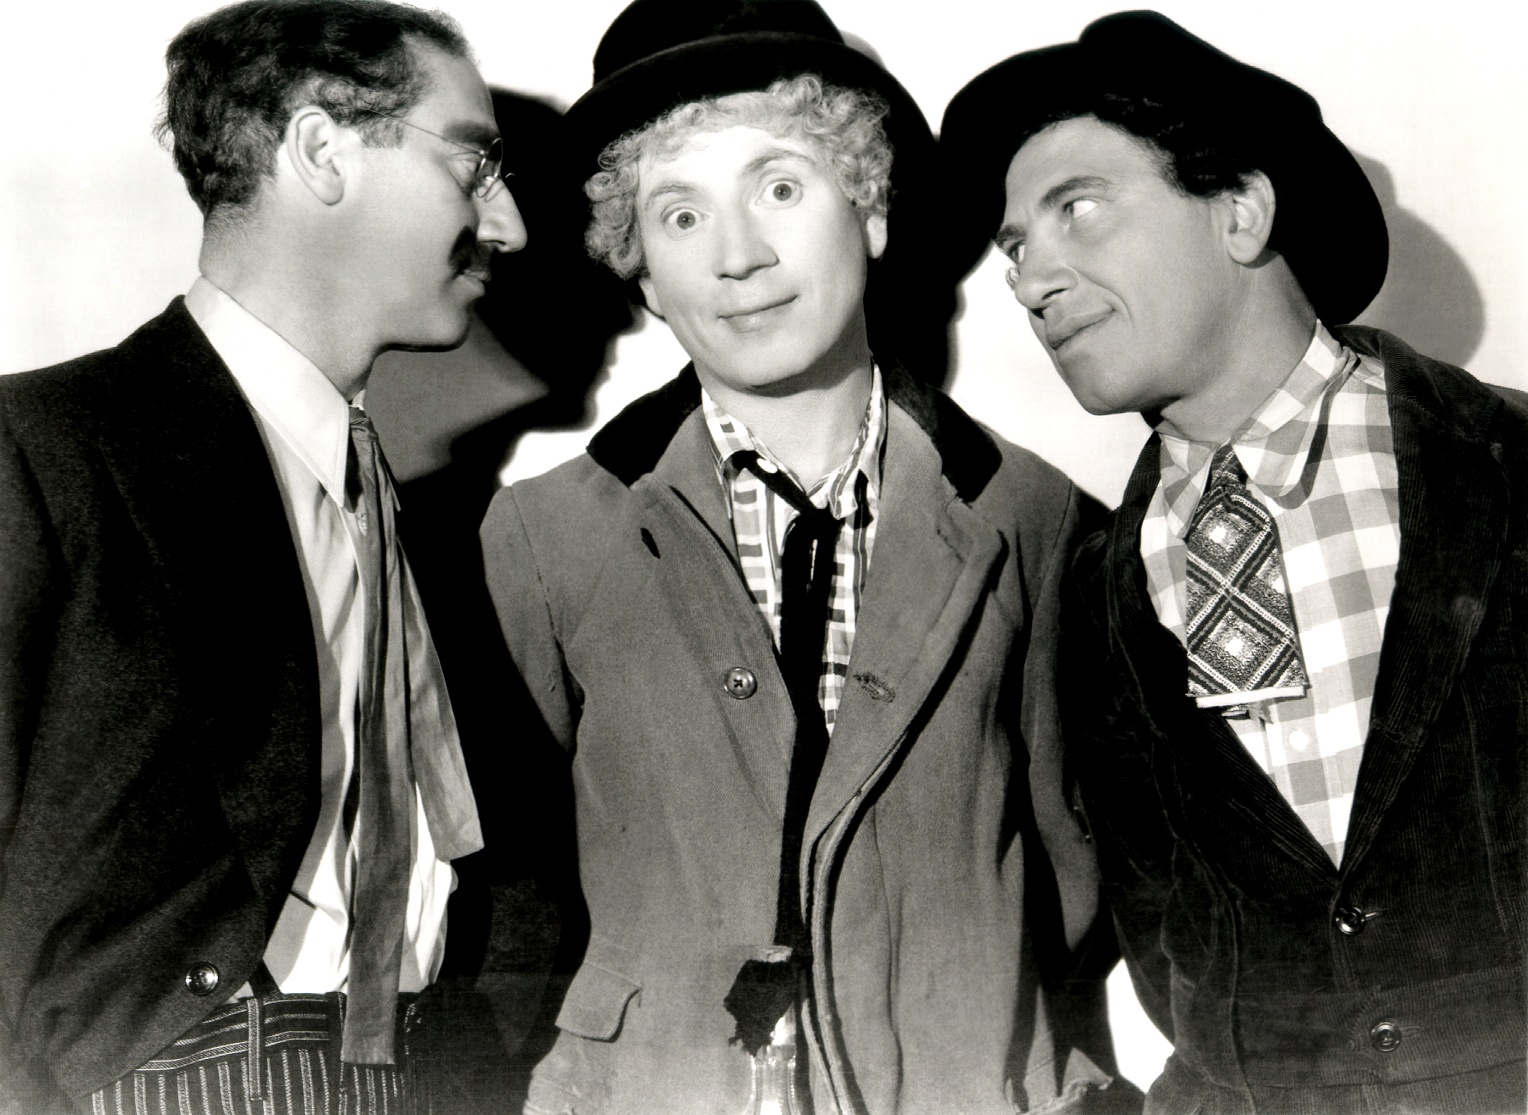 Picture of Groucho, Harpo, and Chico Marx from A Night at the Opera (MGM / 1935)